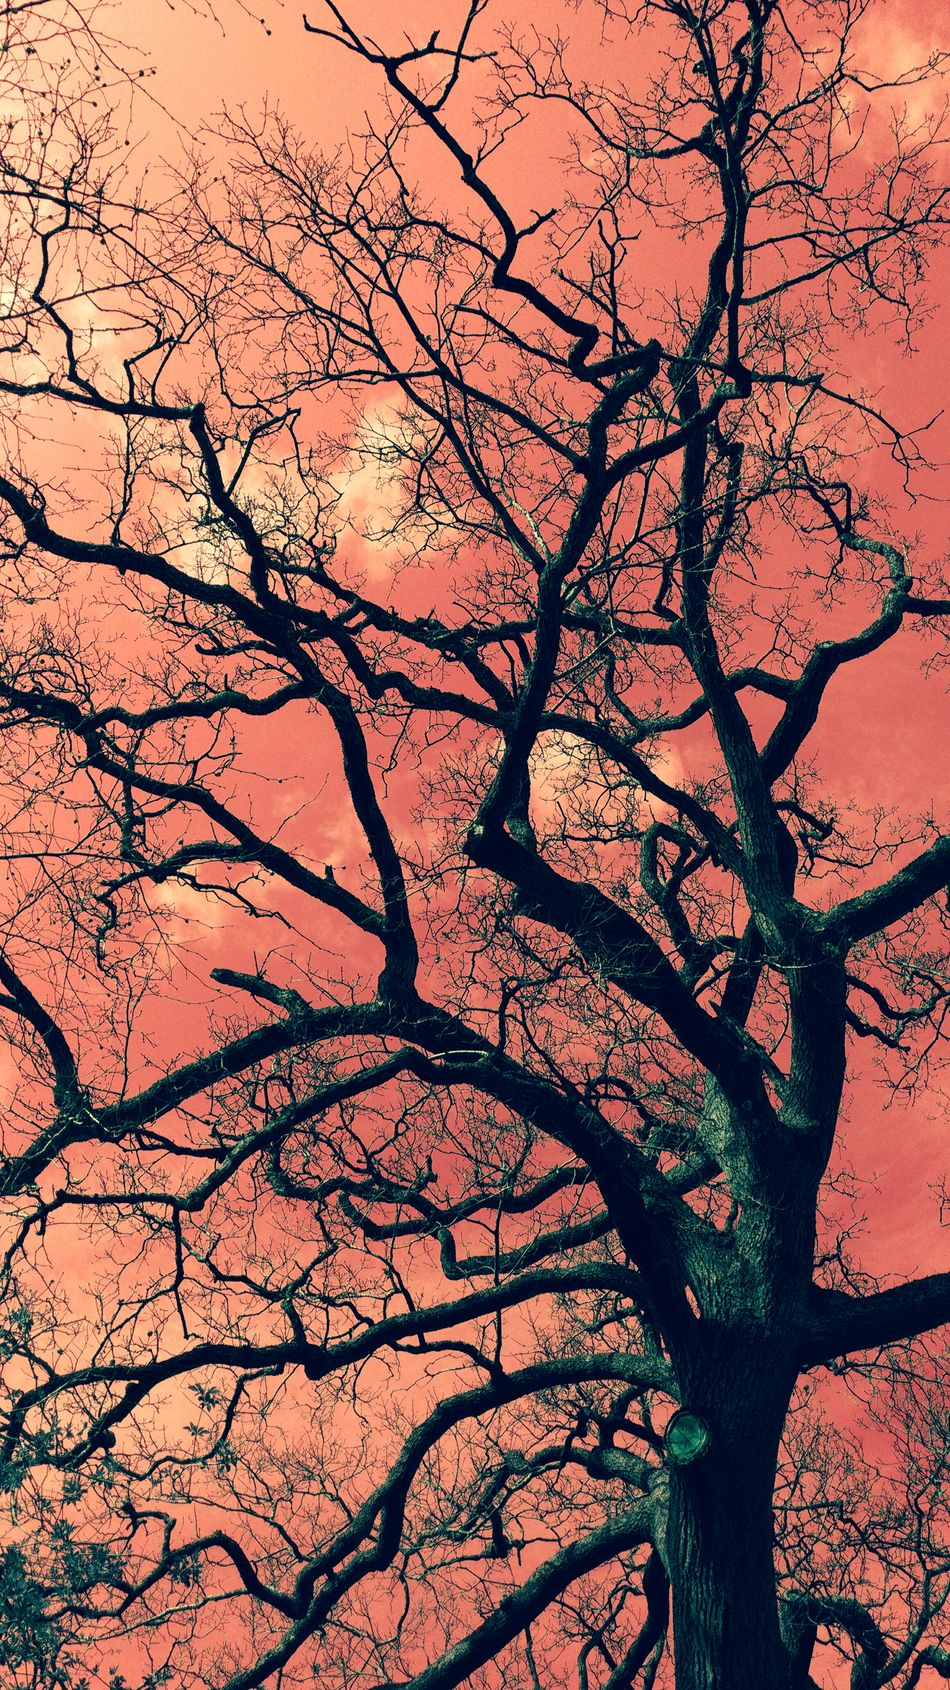 Silhouette Trees Another World Red Sky Colorful Sky Imaginary Landscapes Photography Sky Nature Surreal Sunset Taking Photos Check This Out Hello World Light And Shadow Landscape Atmosphere Fantasy Dreams EyeEm Best Shots Popular Photos Colors Beautiful Beautiful Nature Flowers